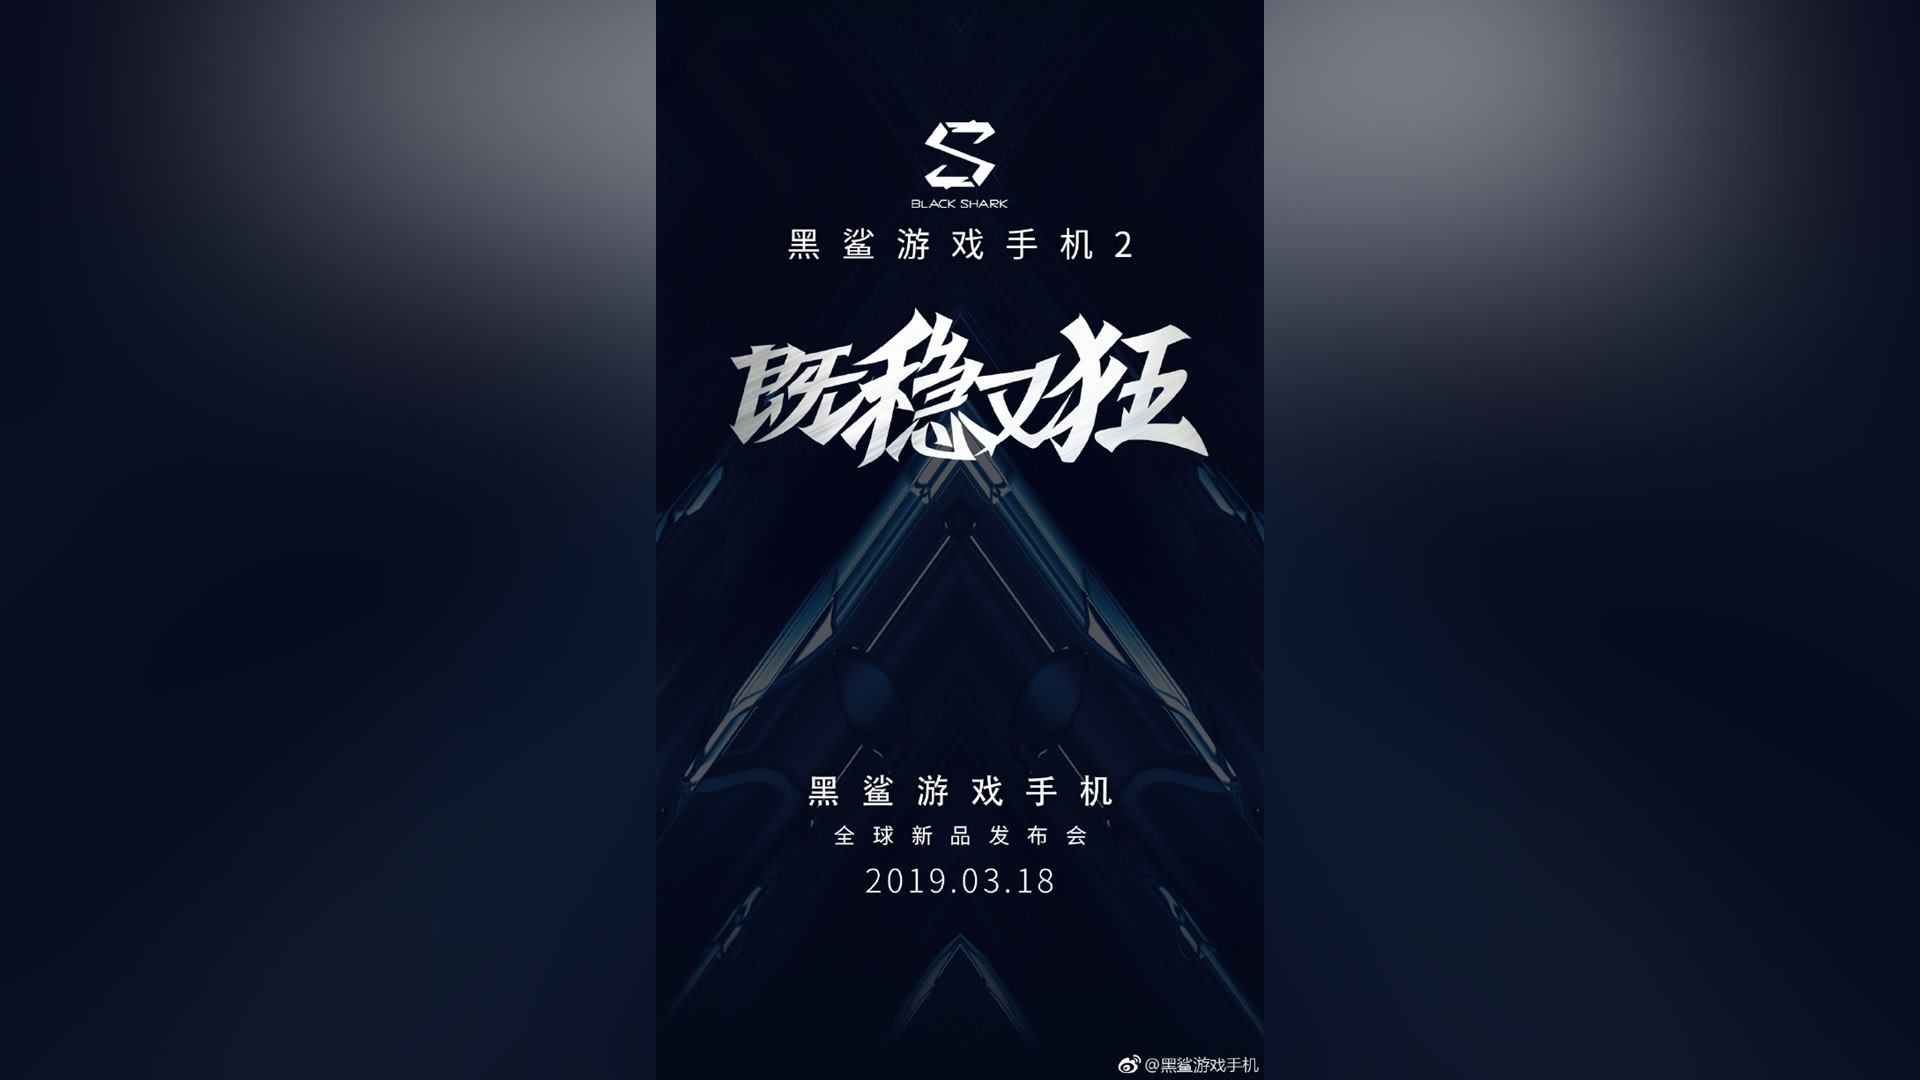 Xiaomi to unveil Black Shark 2 gaming phone on March 18 in Beijing